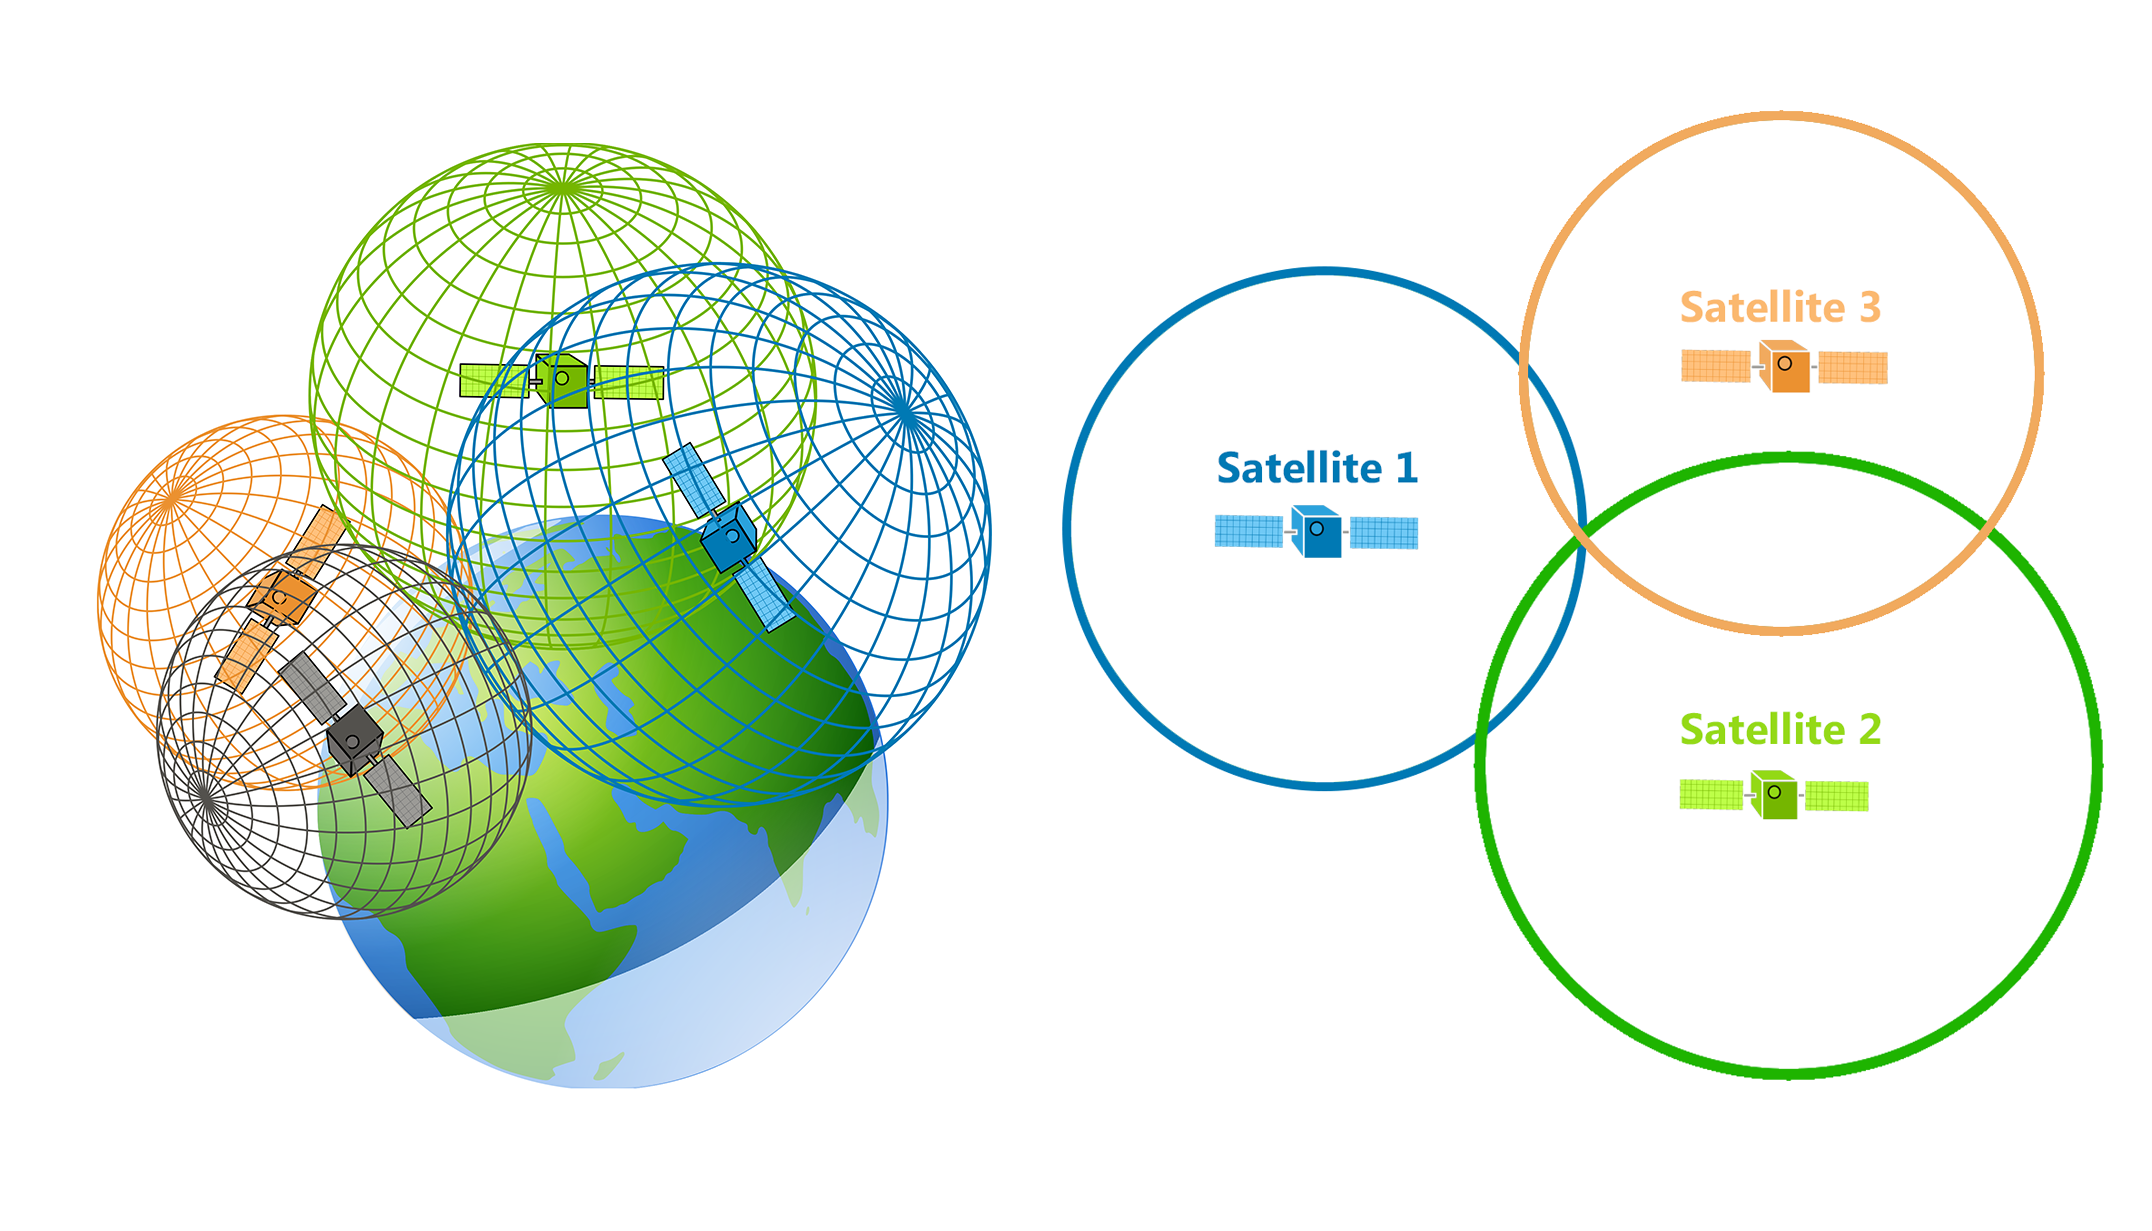 trilateration vs triangulation how gps receivers work Gps Architecture Diagram